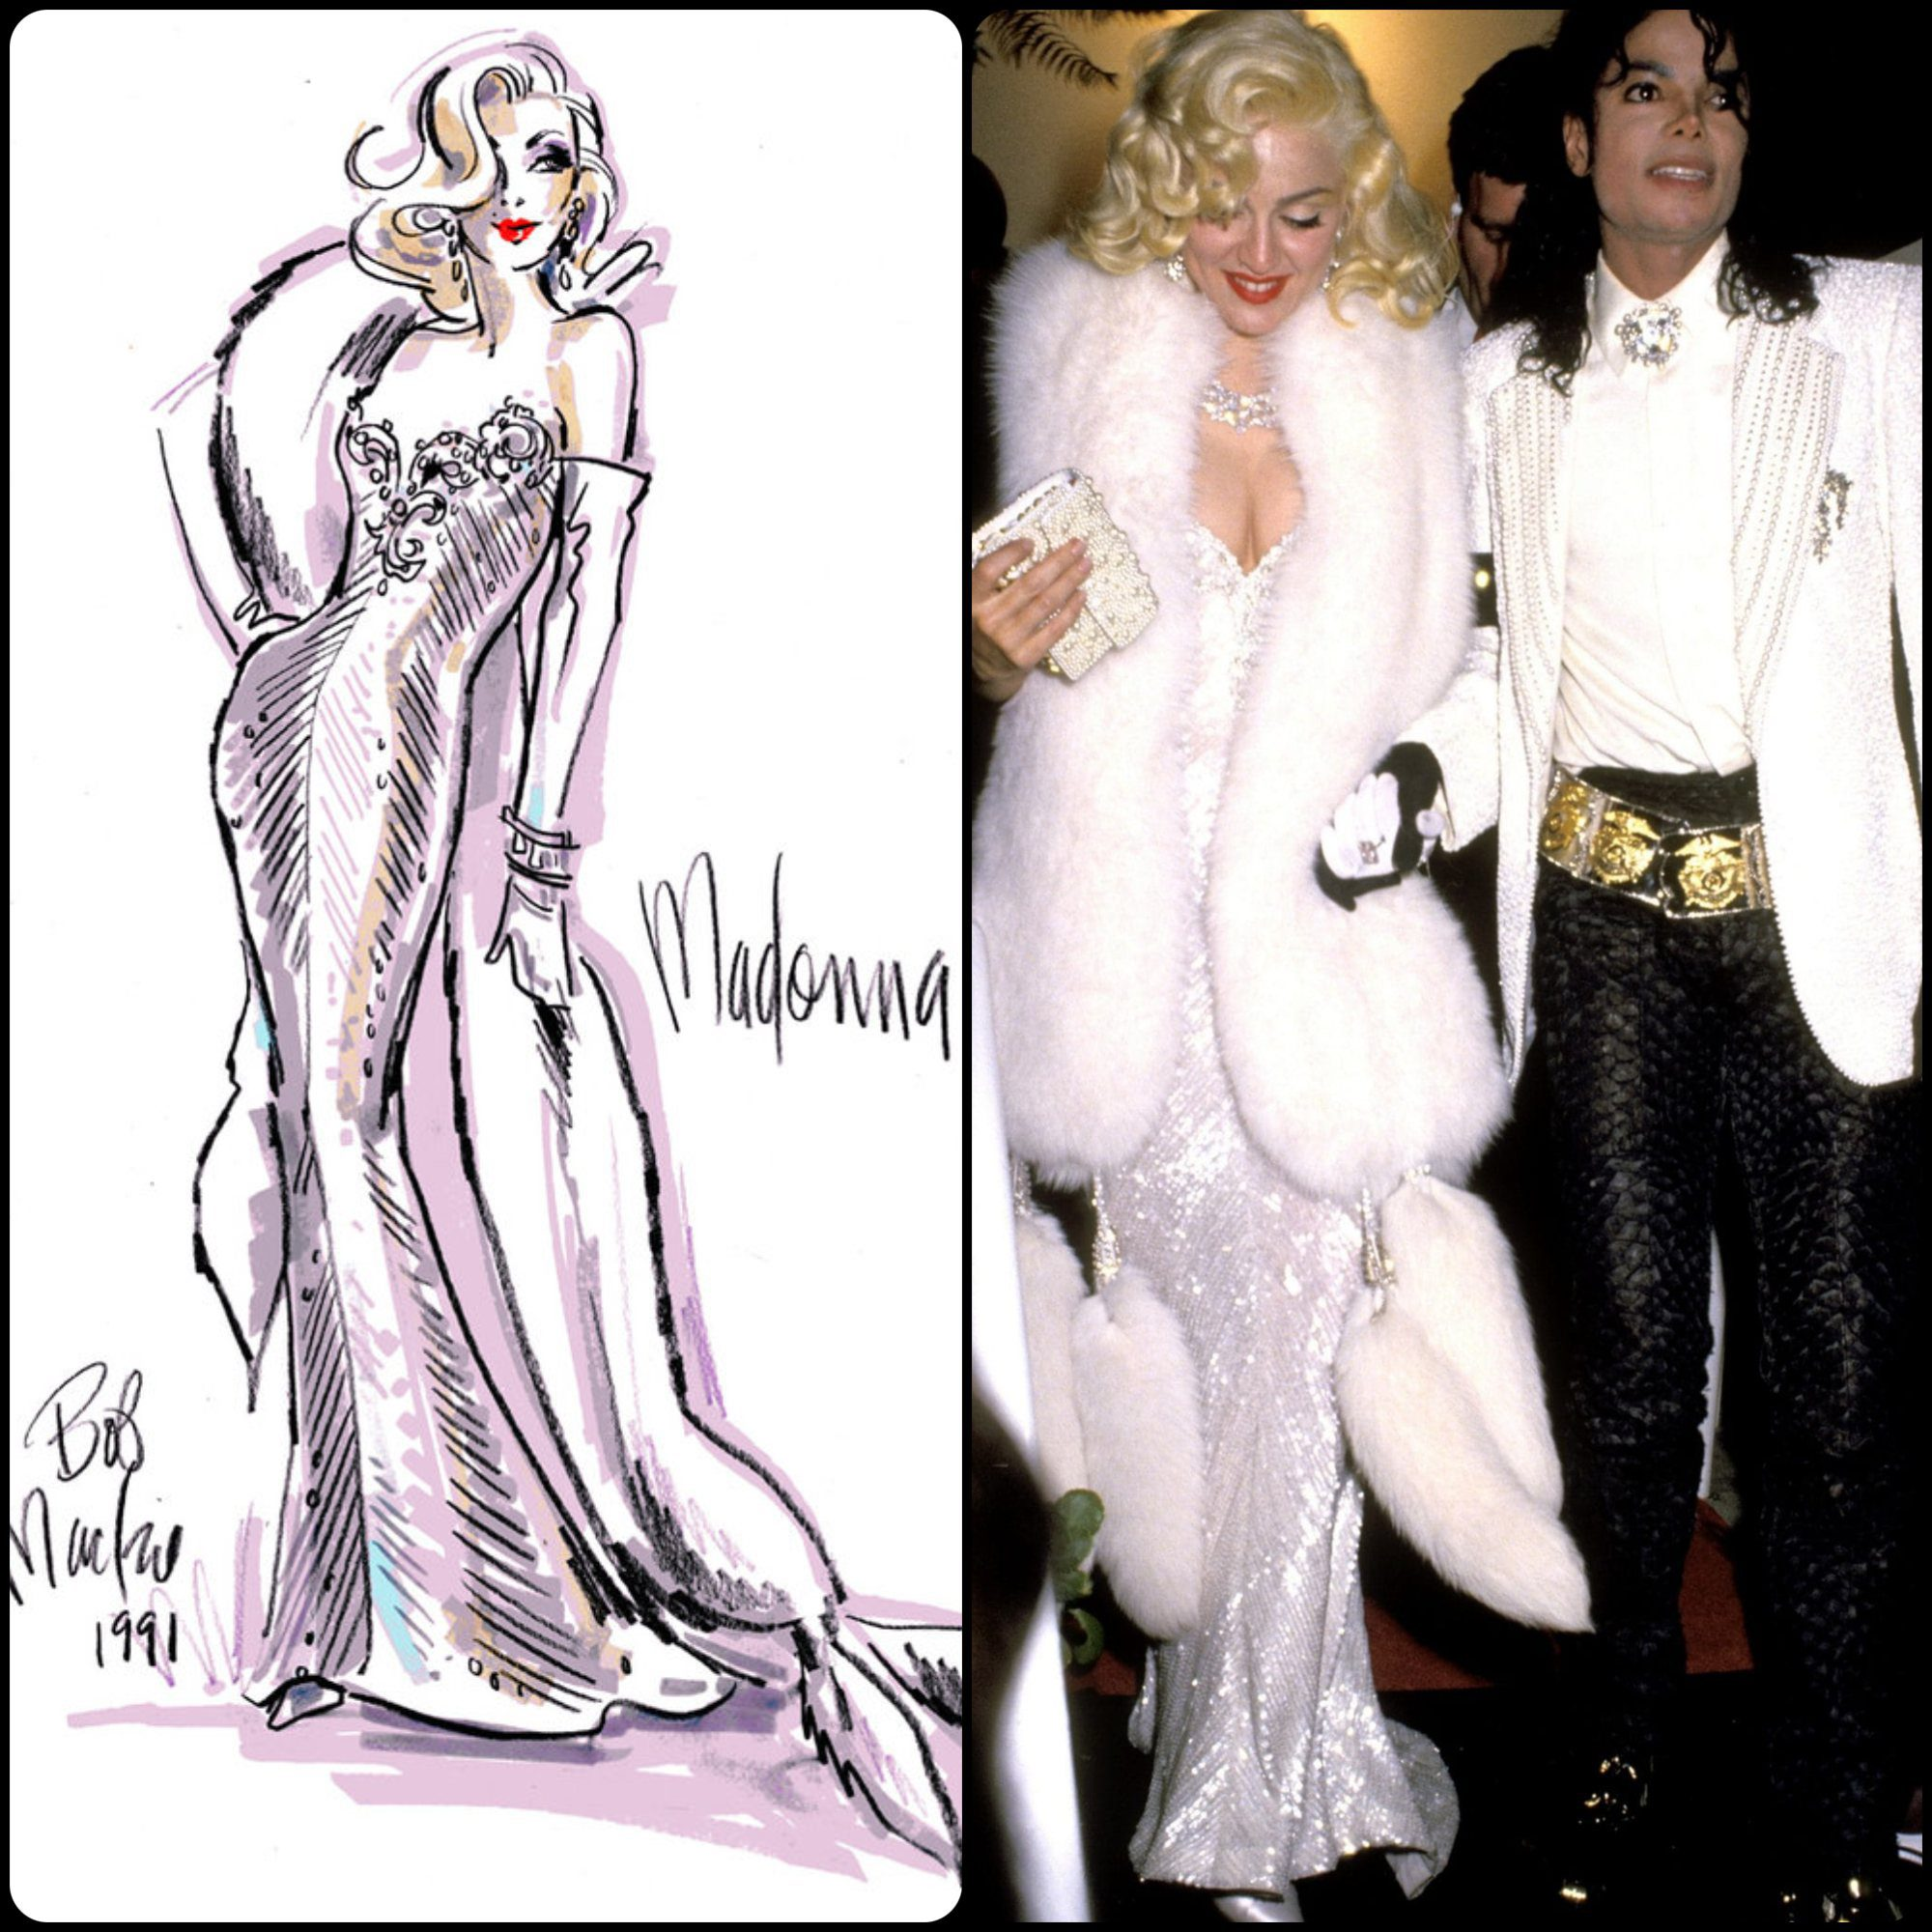 Madonna in Bob Mackie dress with Mickael Jackson at Oscars Academy Awards 1991